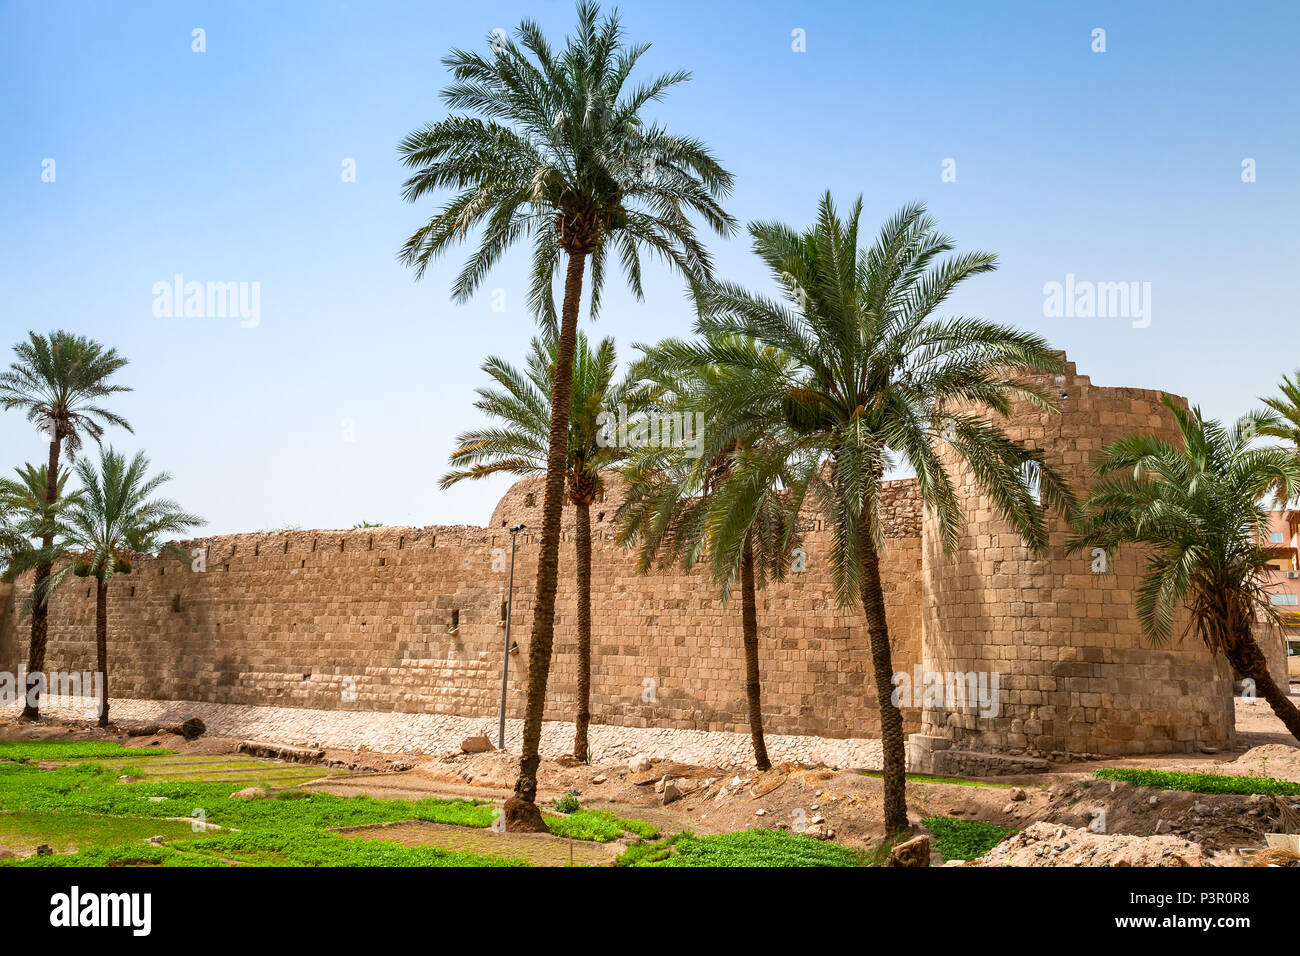 Aqaba Castle, Mamluk Castle or Aqaba Fort located in Aqaba city, Jordan - Stock Image